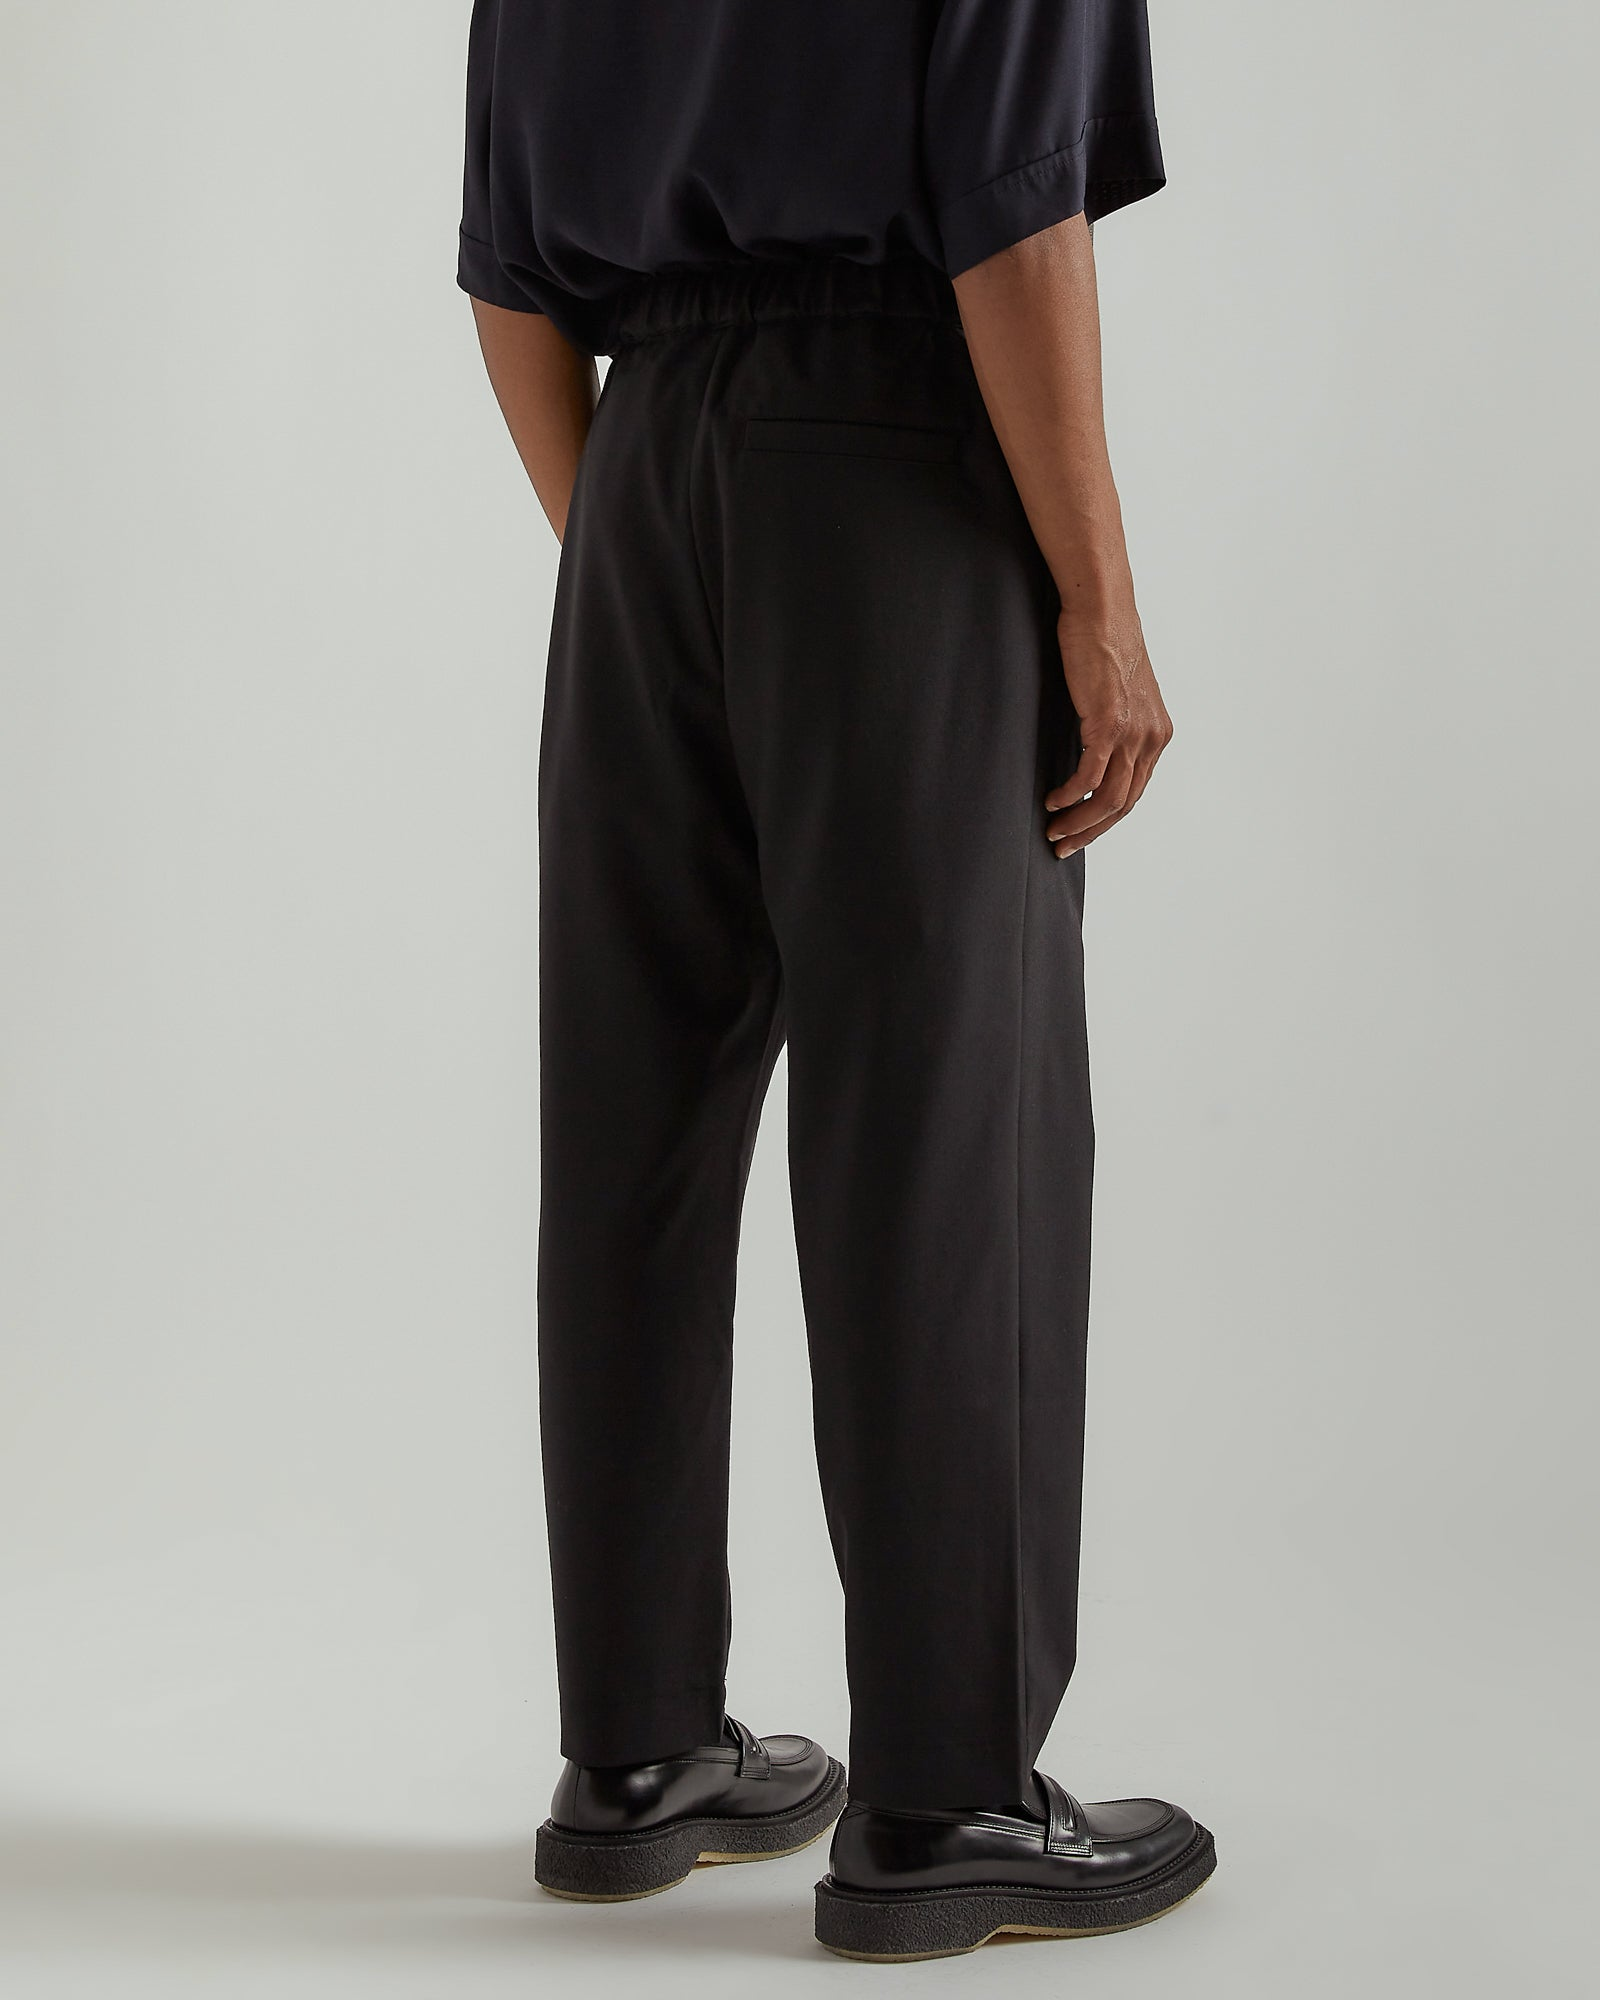 Regs Wool Pants in Black